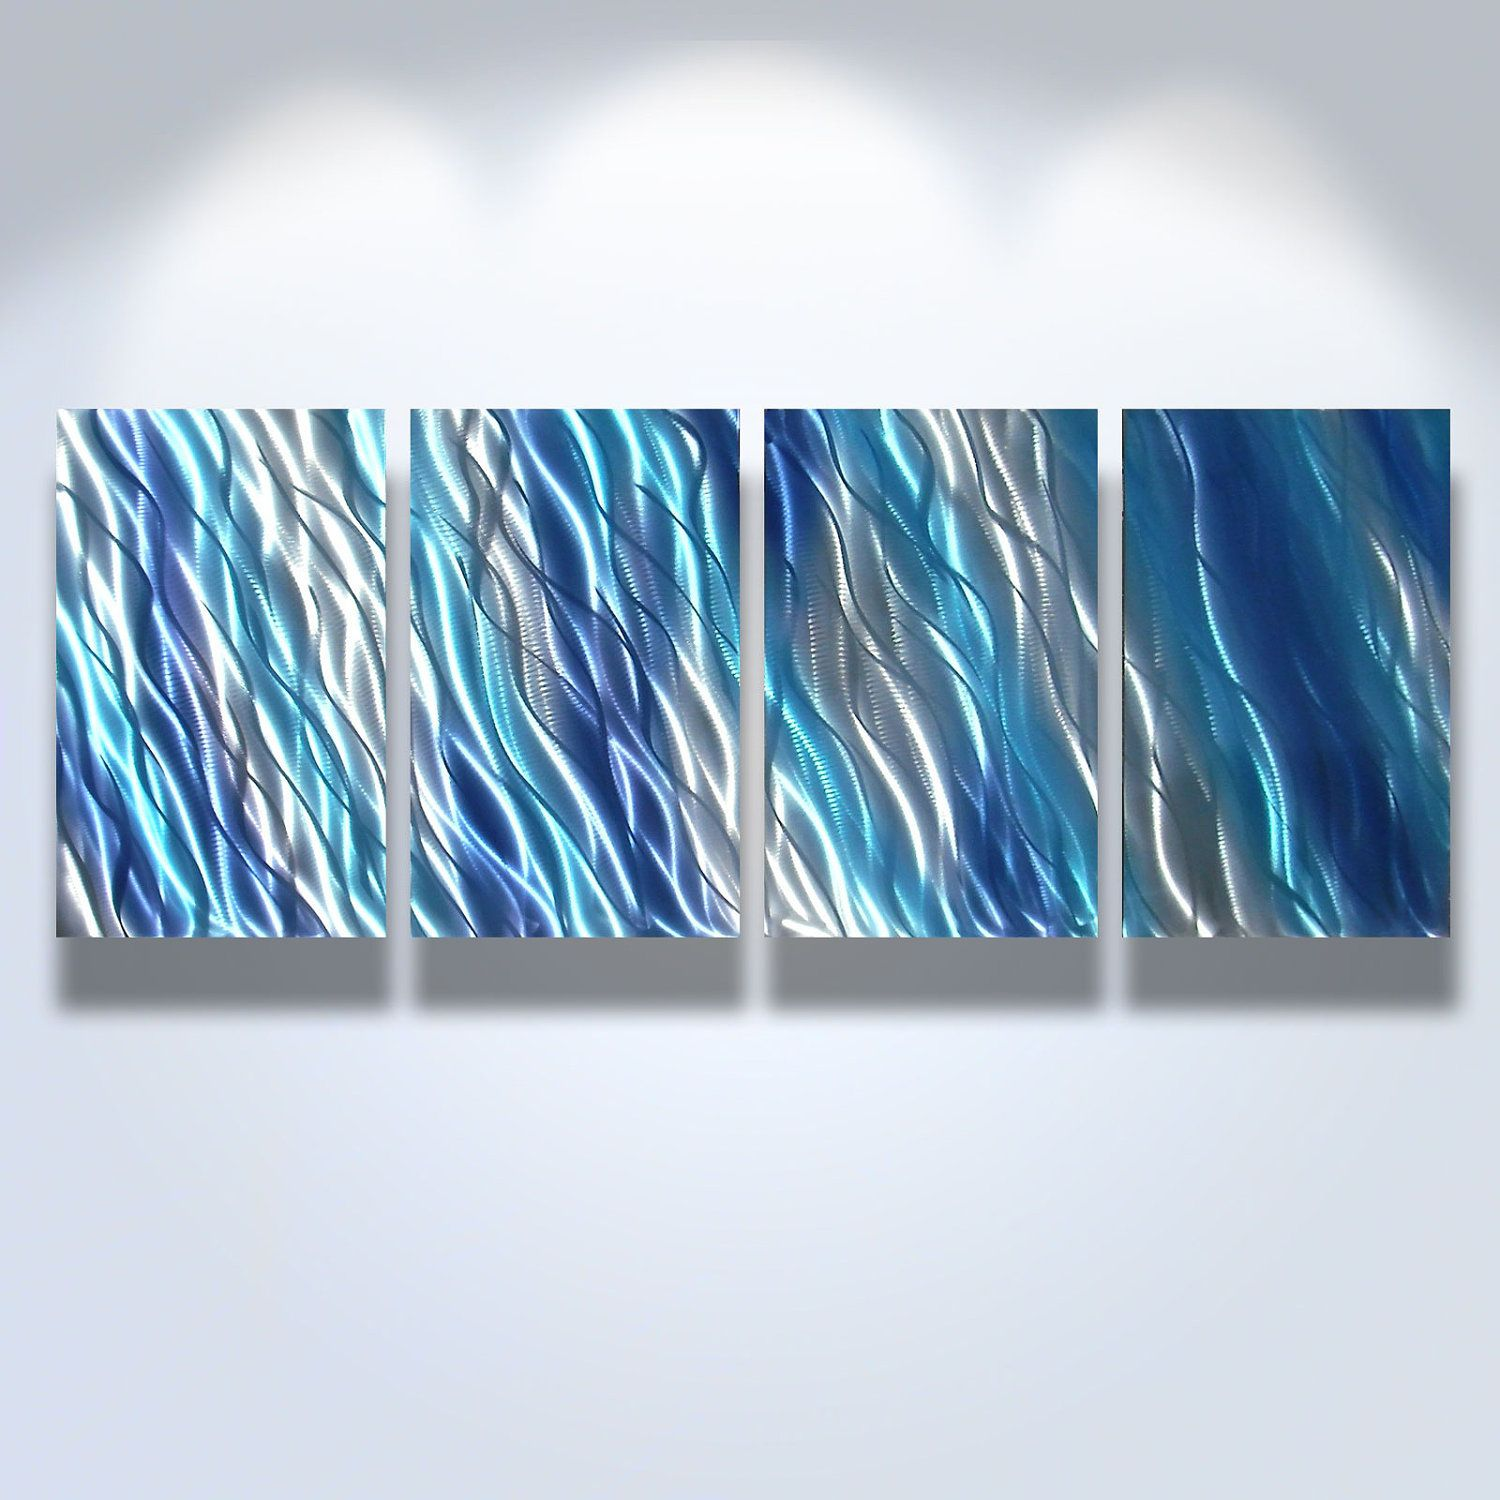 Blue Metal Wall Art Fair Metal Wall Art Decor Abstract Contemporary Modern Sculpture Design Inspiration